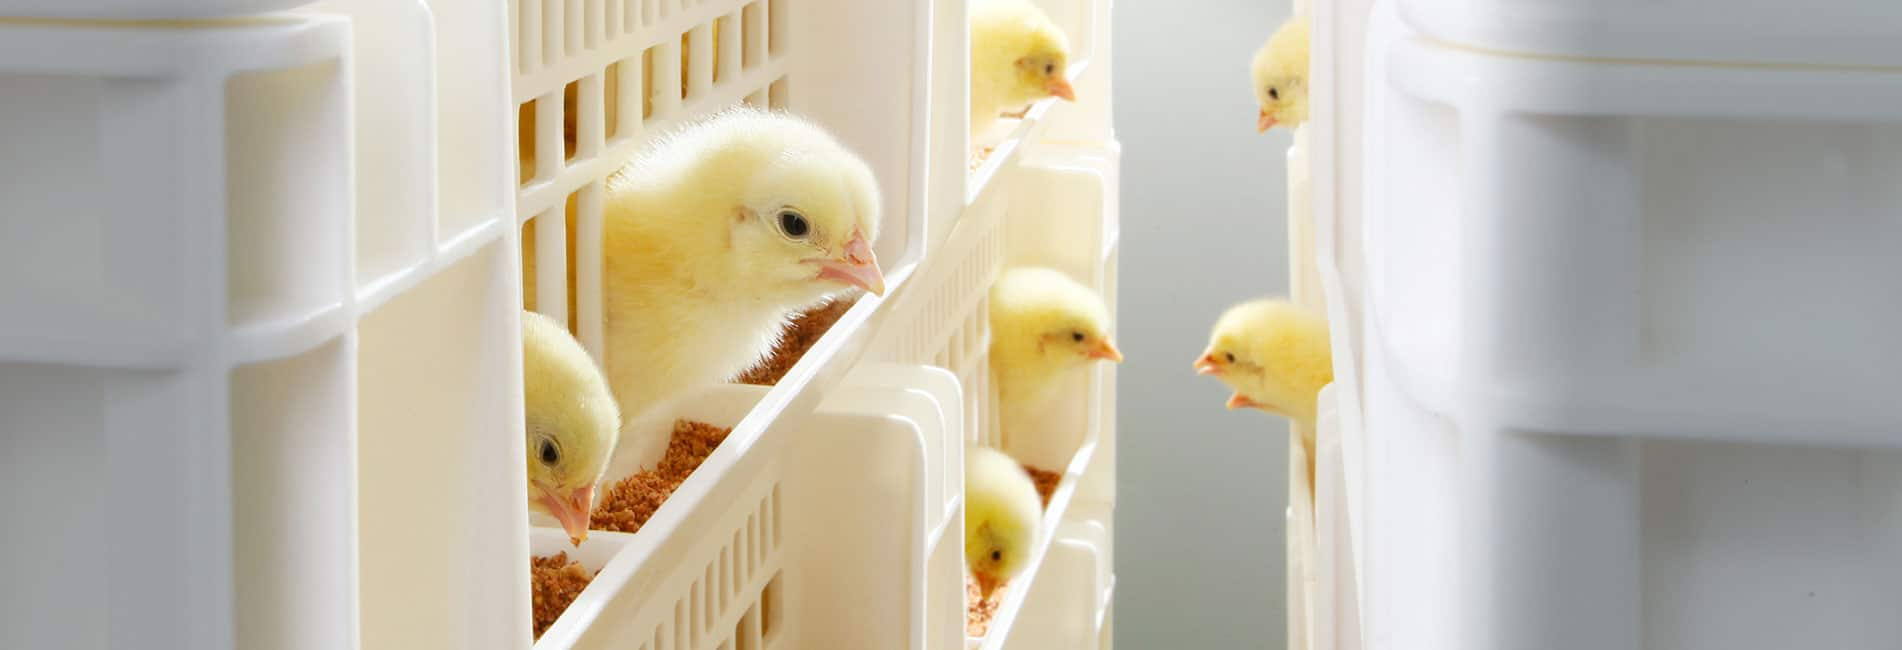 Hatchtrack chicken industry